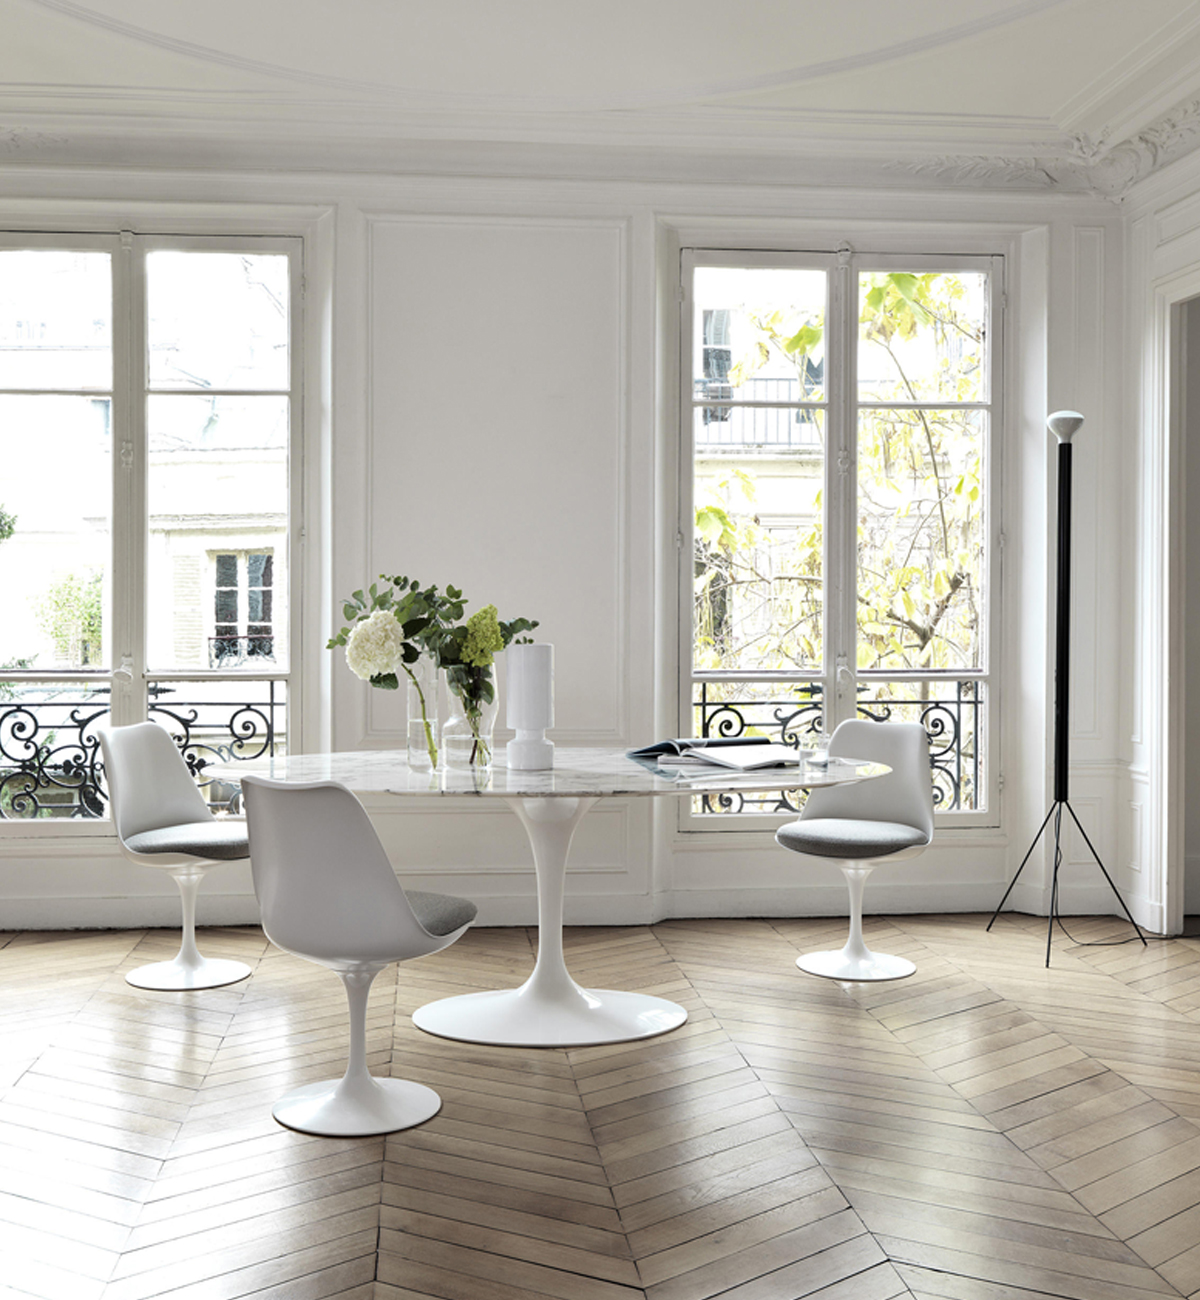 The swivel mechanism of the Tulip Chair allows you to move from sitting to standing with ease